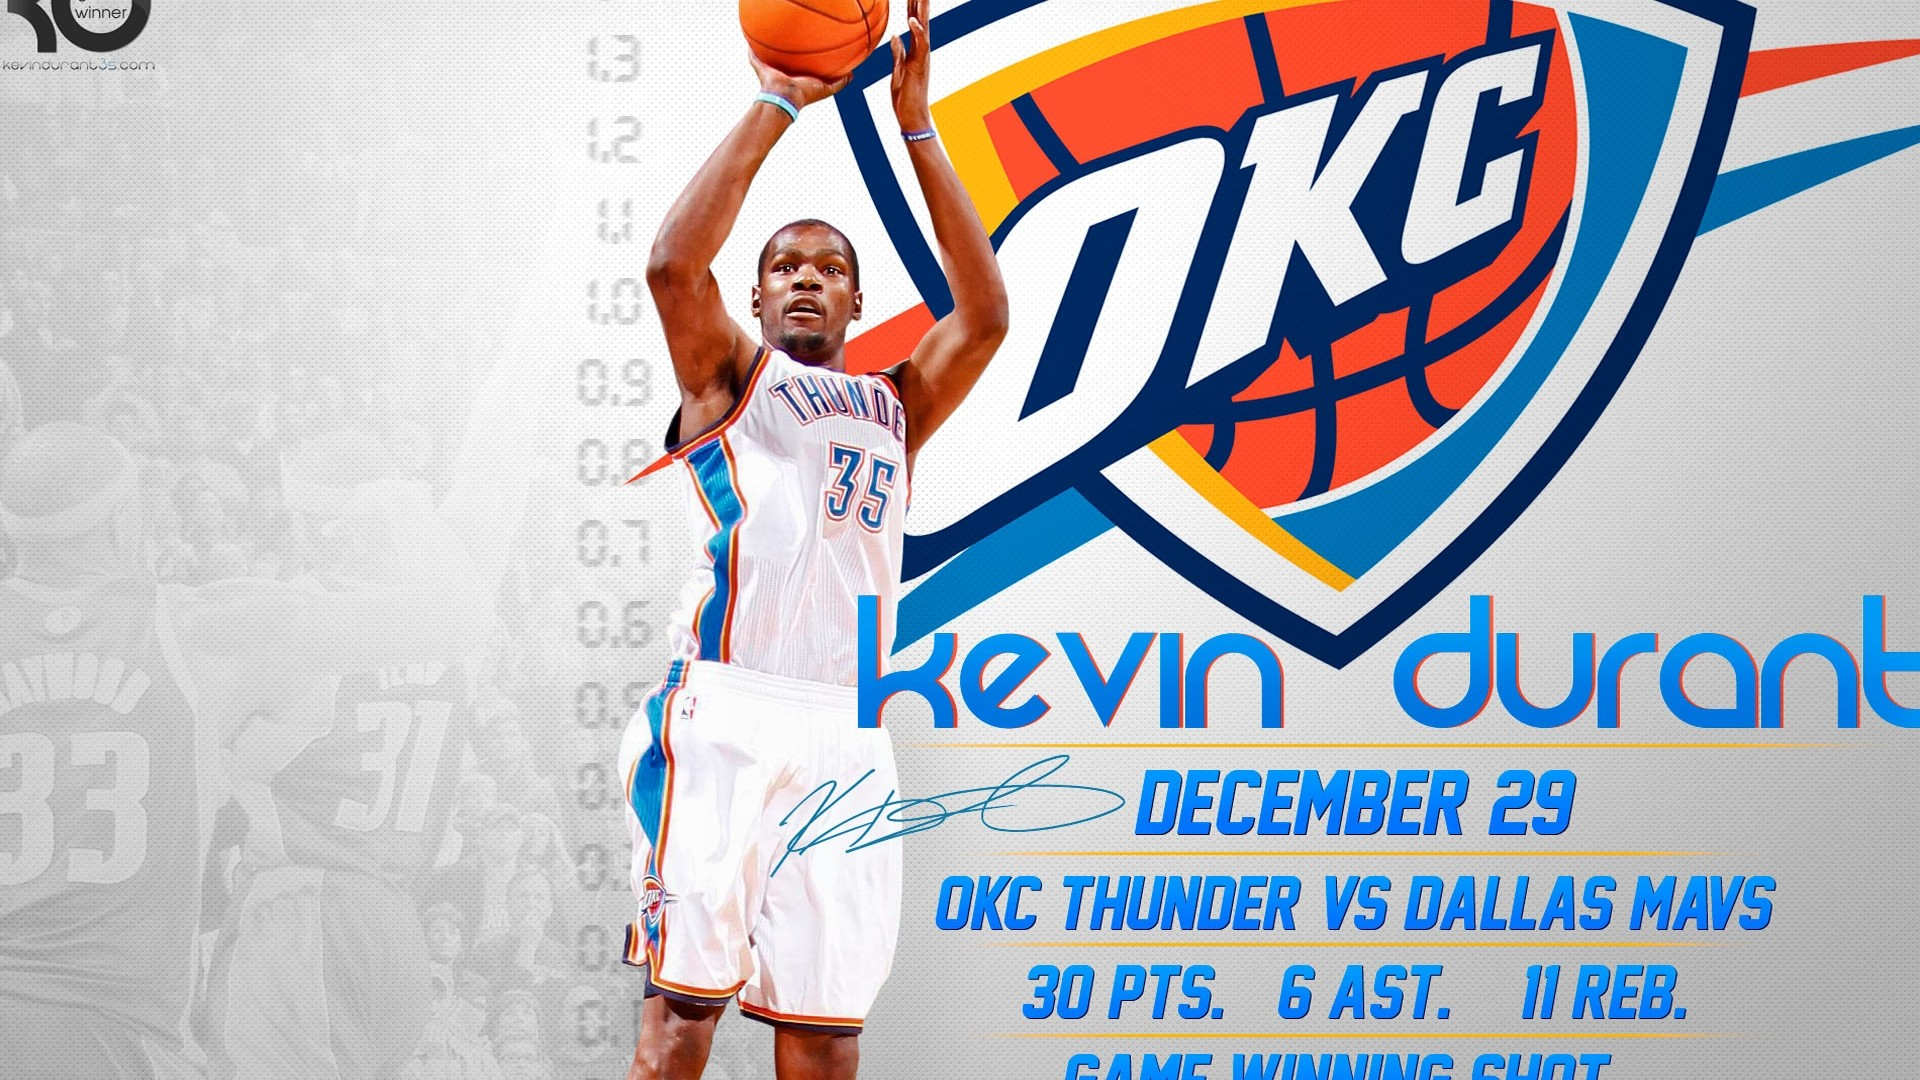 1920x1080 Kevin Durant Wallpapers HD - wallpaper.wiki